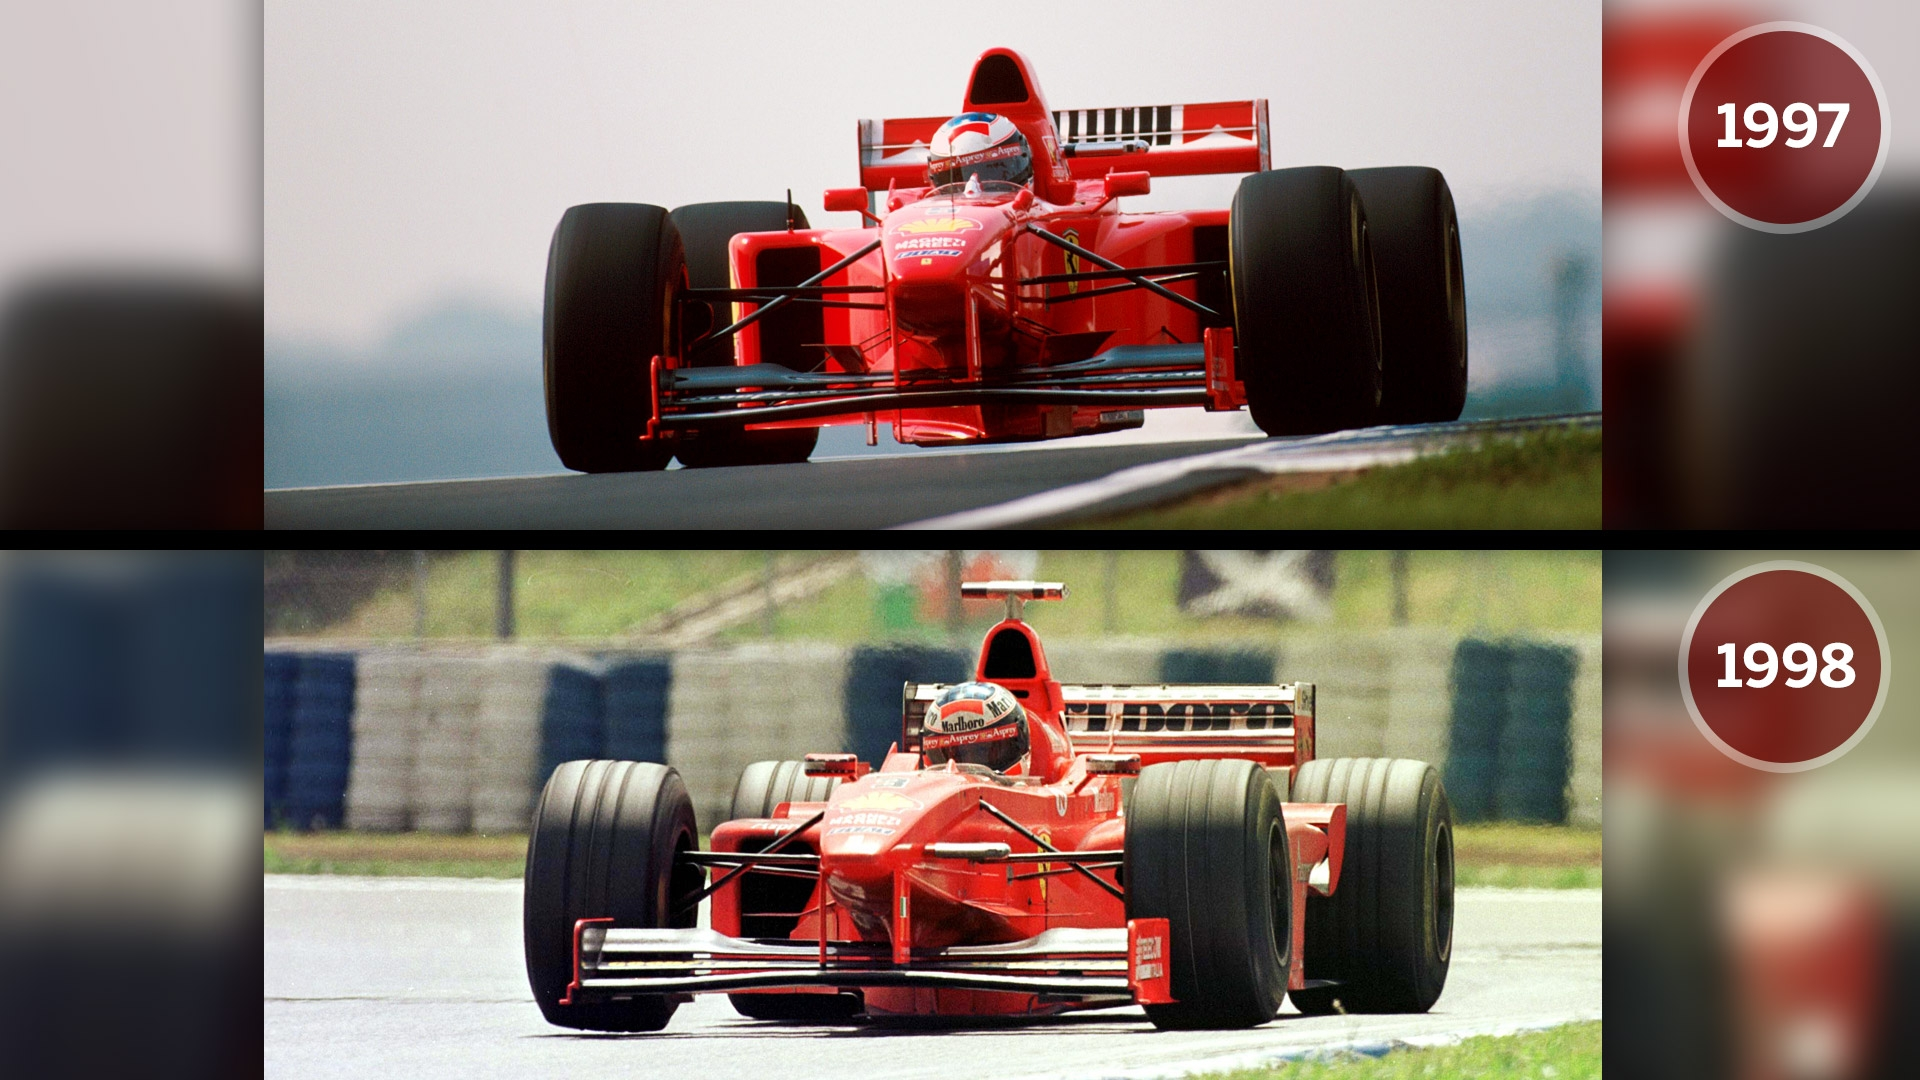 the second major rule change was to the overall width or track of the cars which was slashed by 12 percent from 200cm to 180cm see above and below